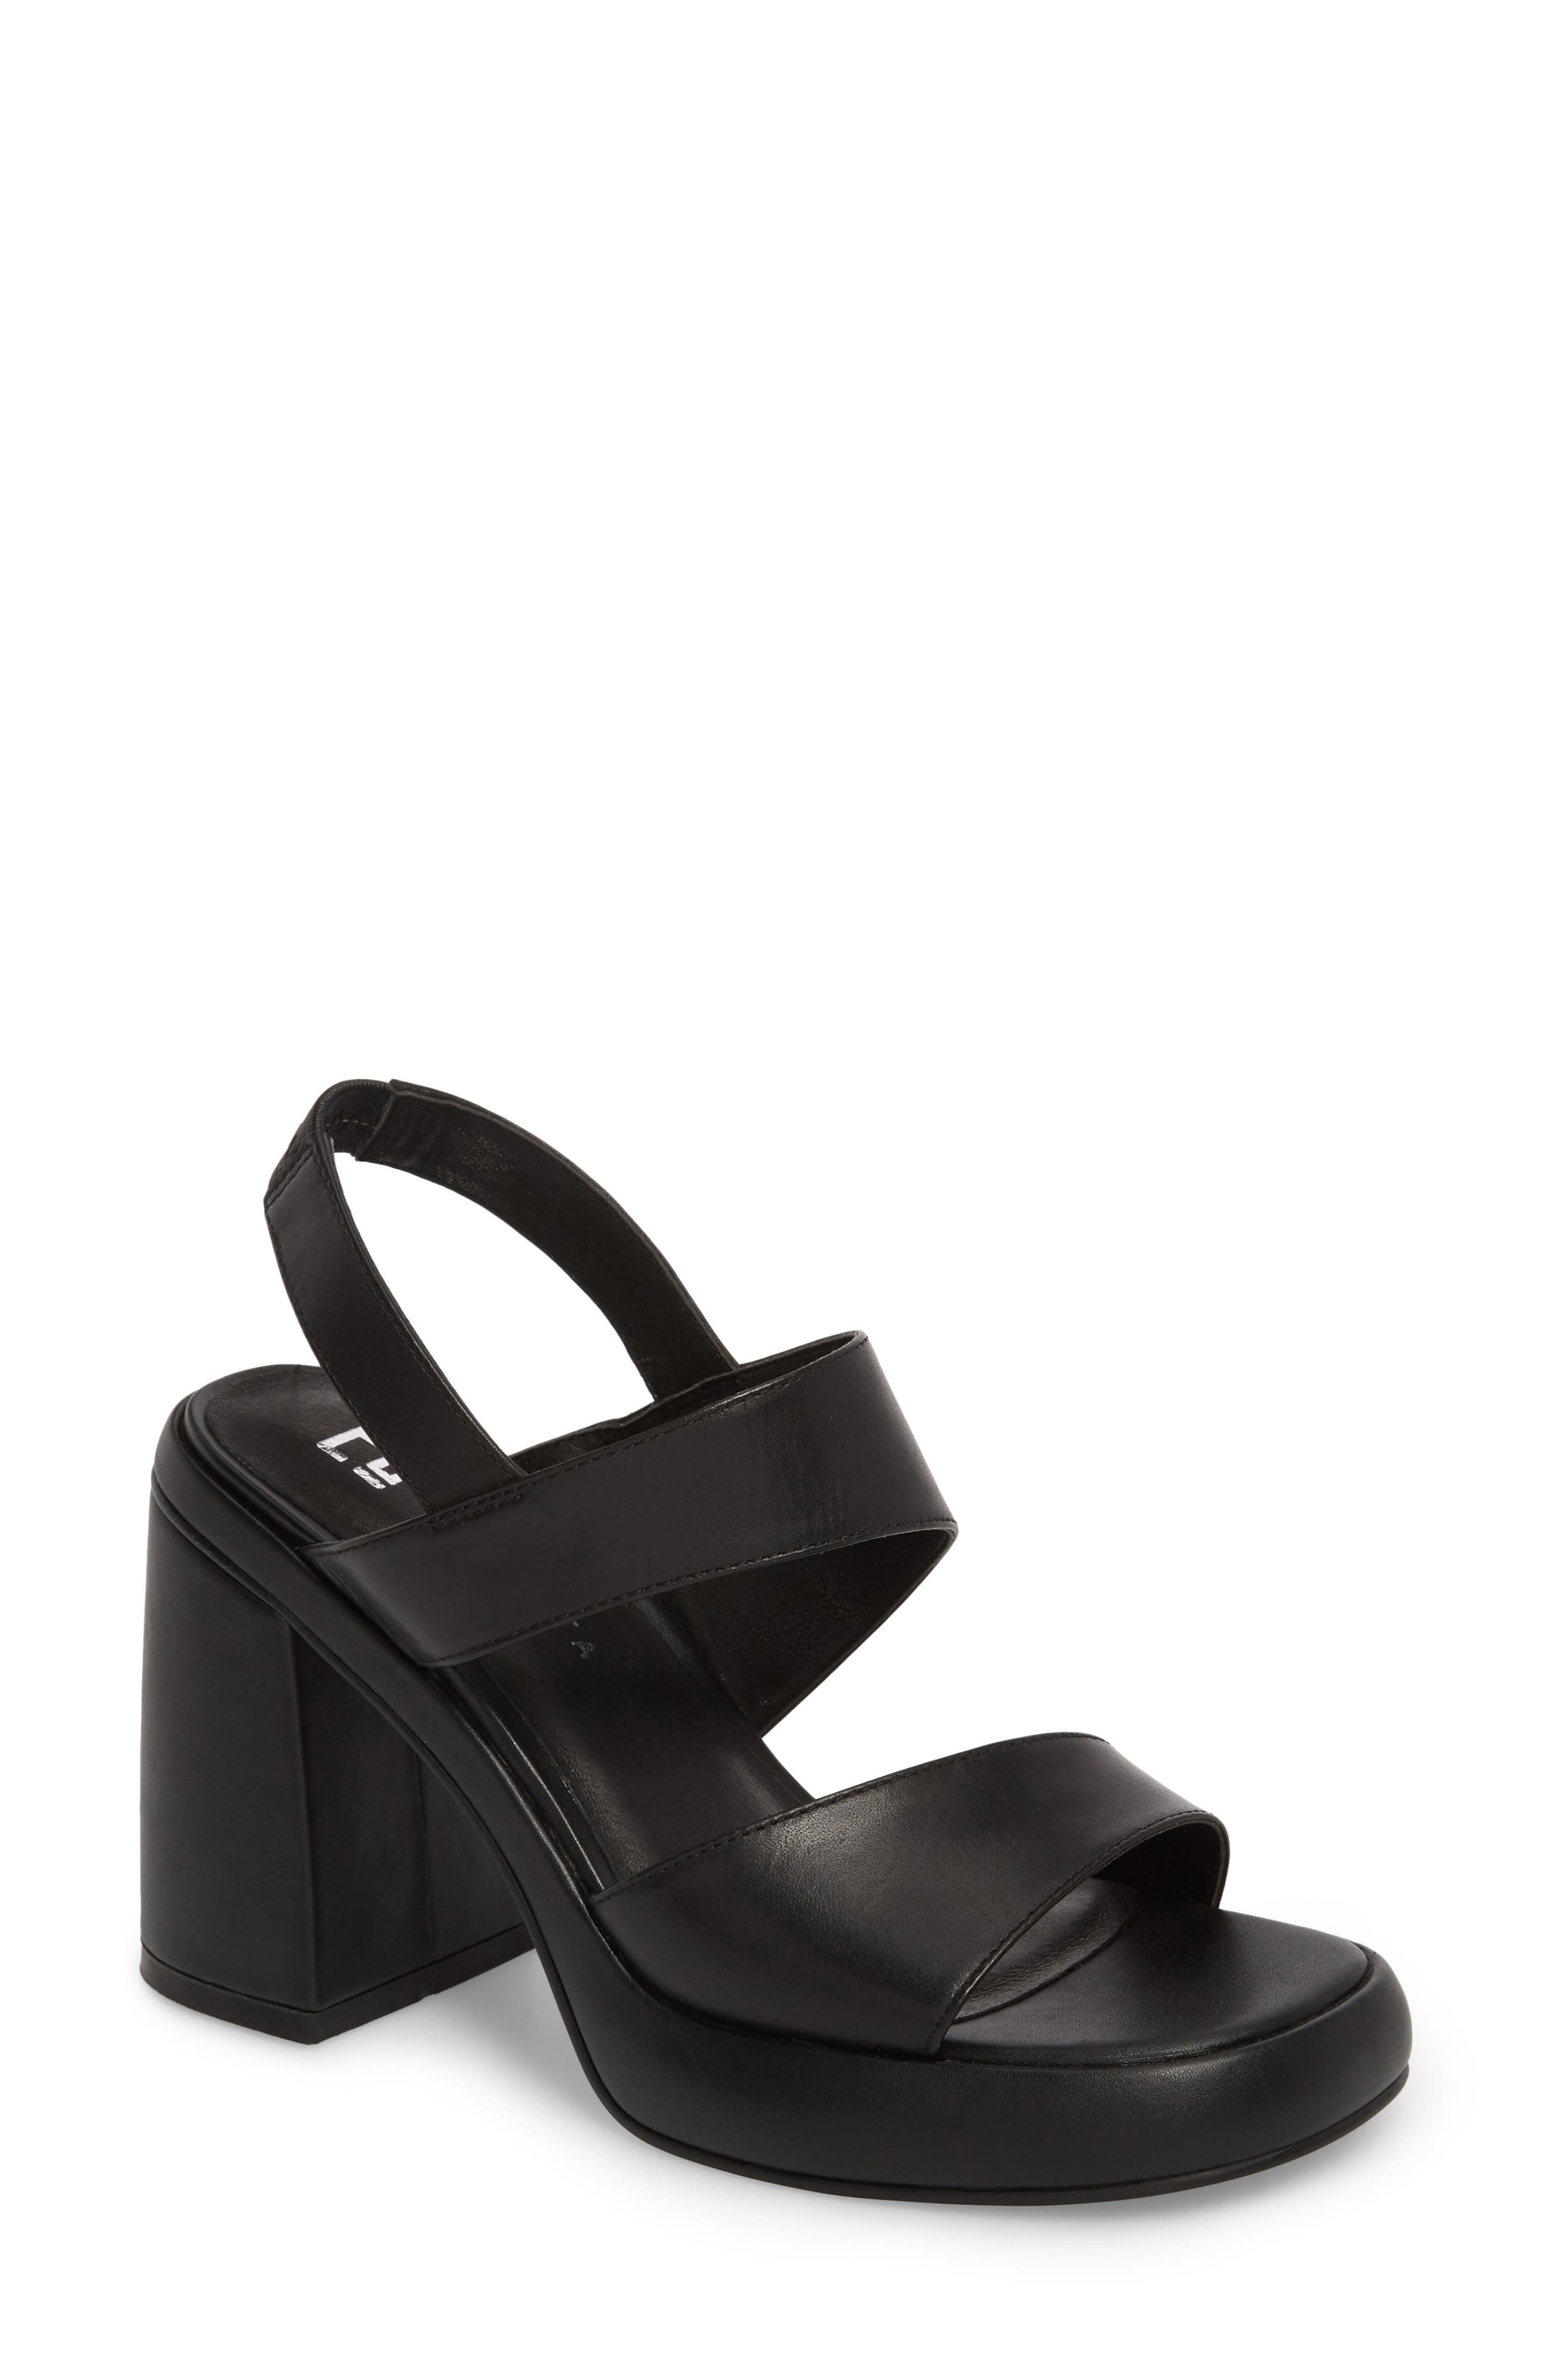 E8 by Miista Block Heel Sandal (Women)